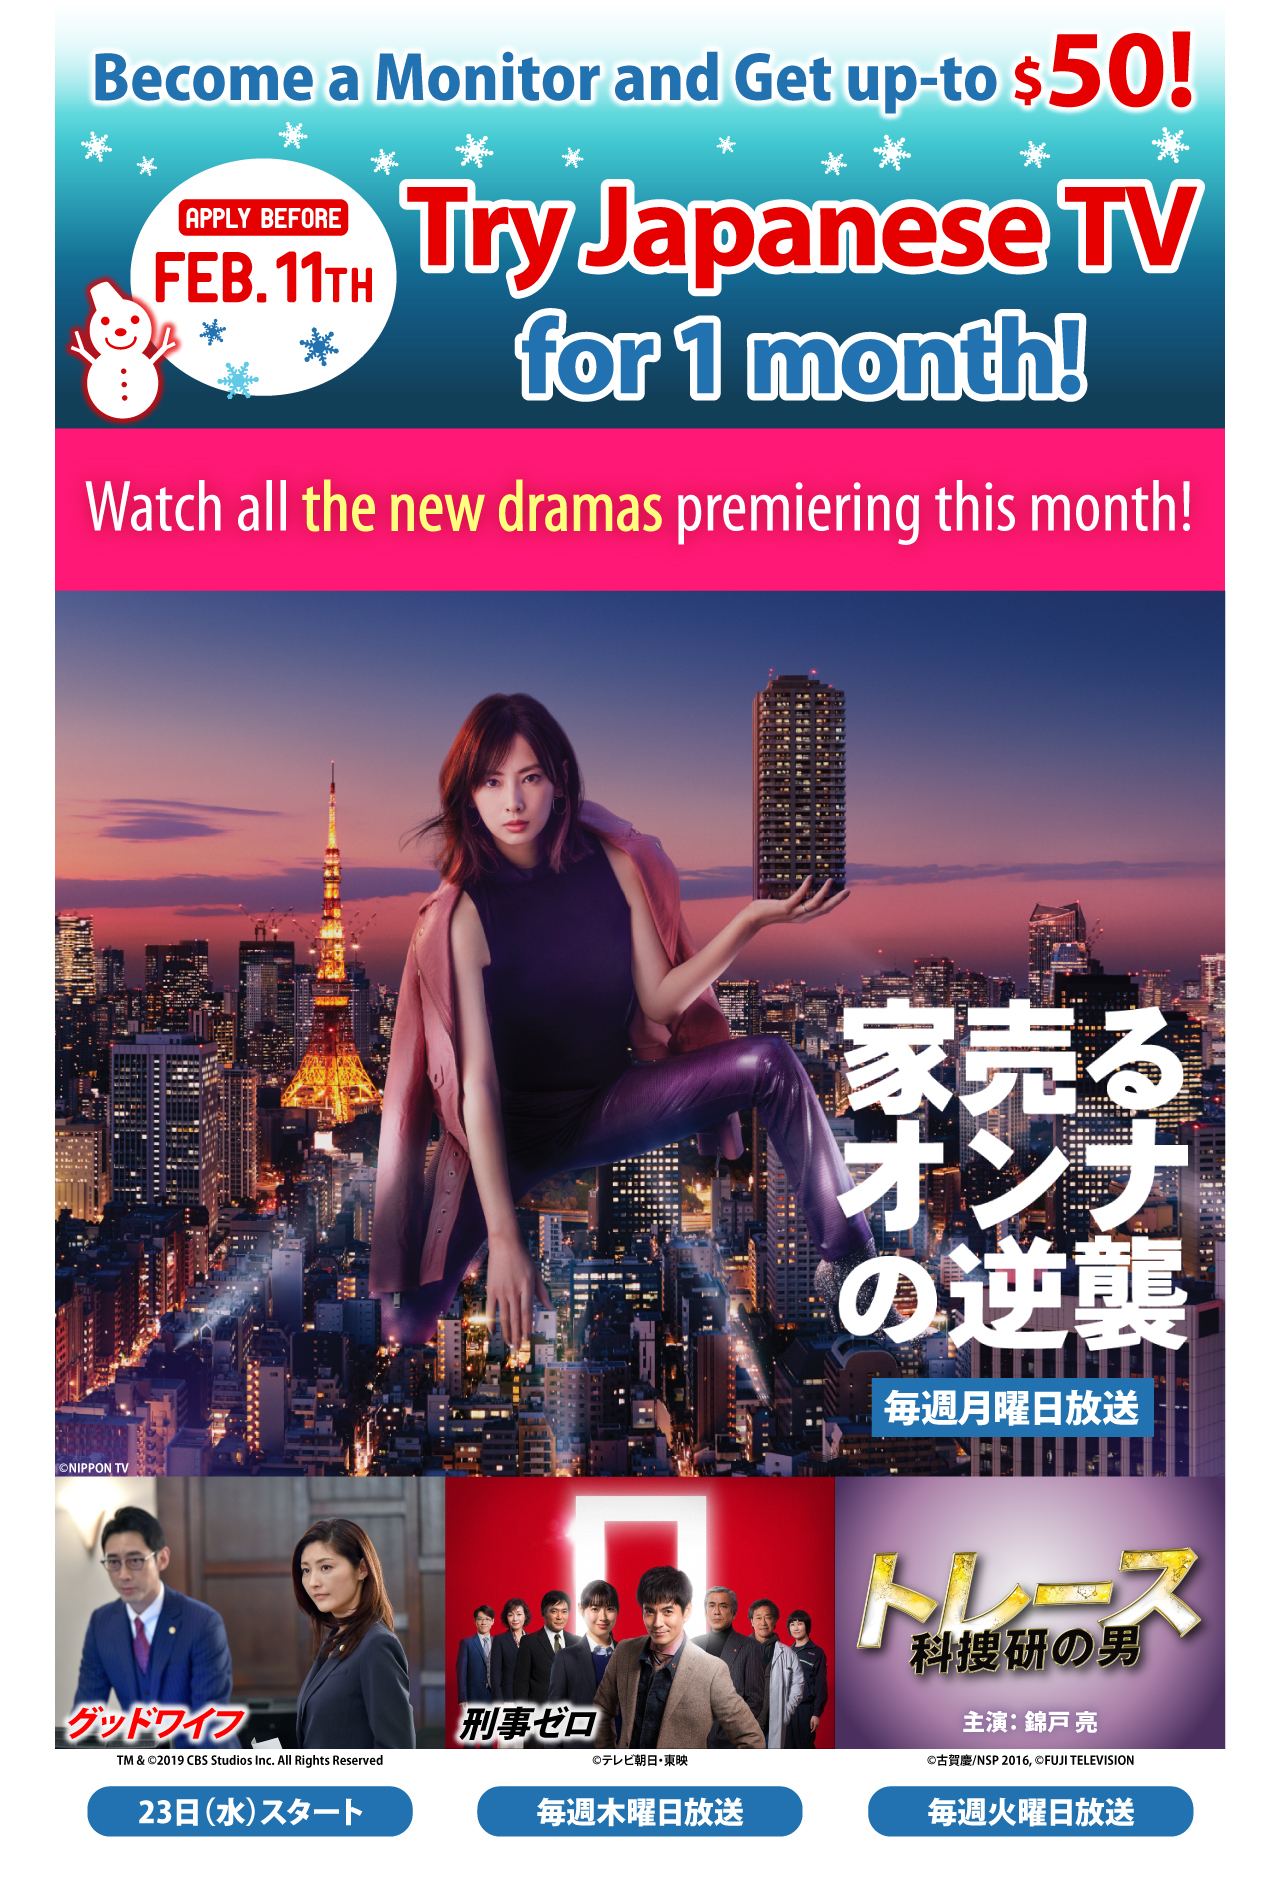 Become a Monitor and Get up-to $50! Try Japanese TV for 1 month!